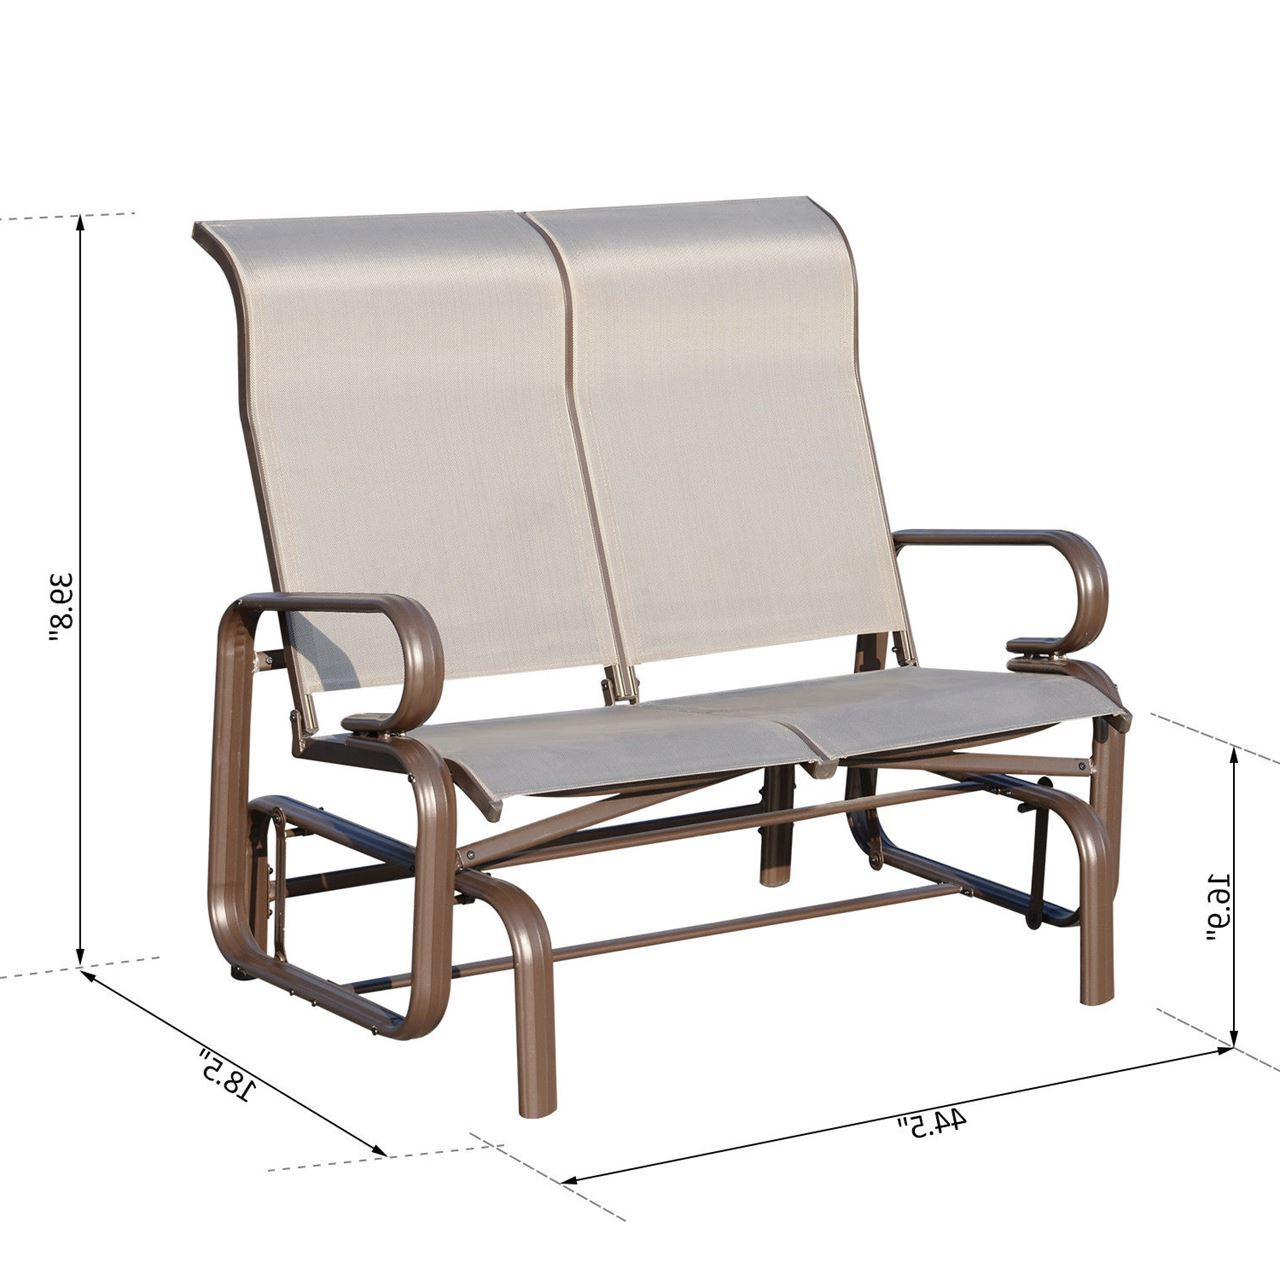 Double Glider Benches With Cushion Regarding 2020 Outdoor Aluminum Double Glider Rocking Bench Swing (View 26 of 30)